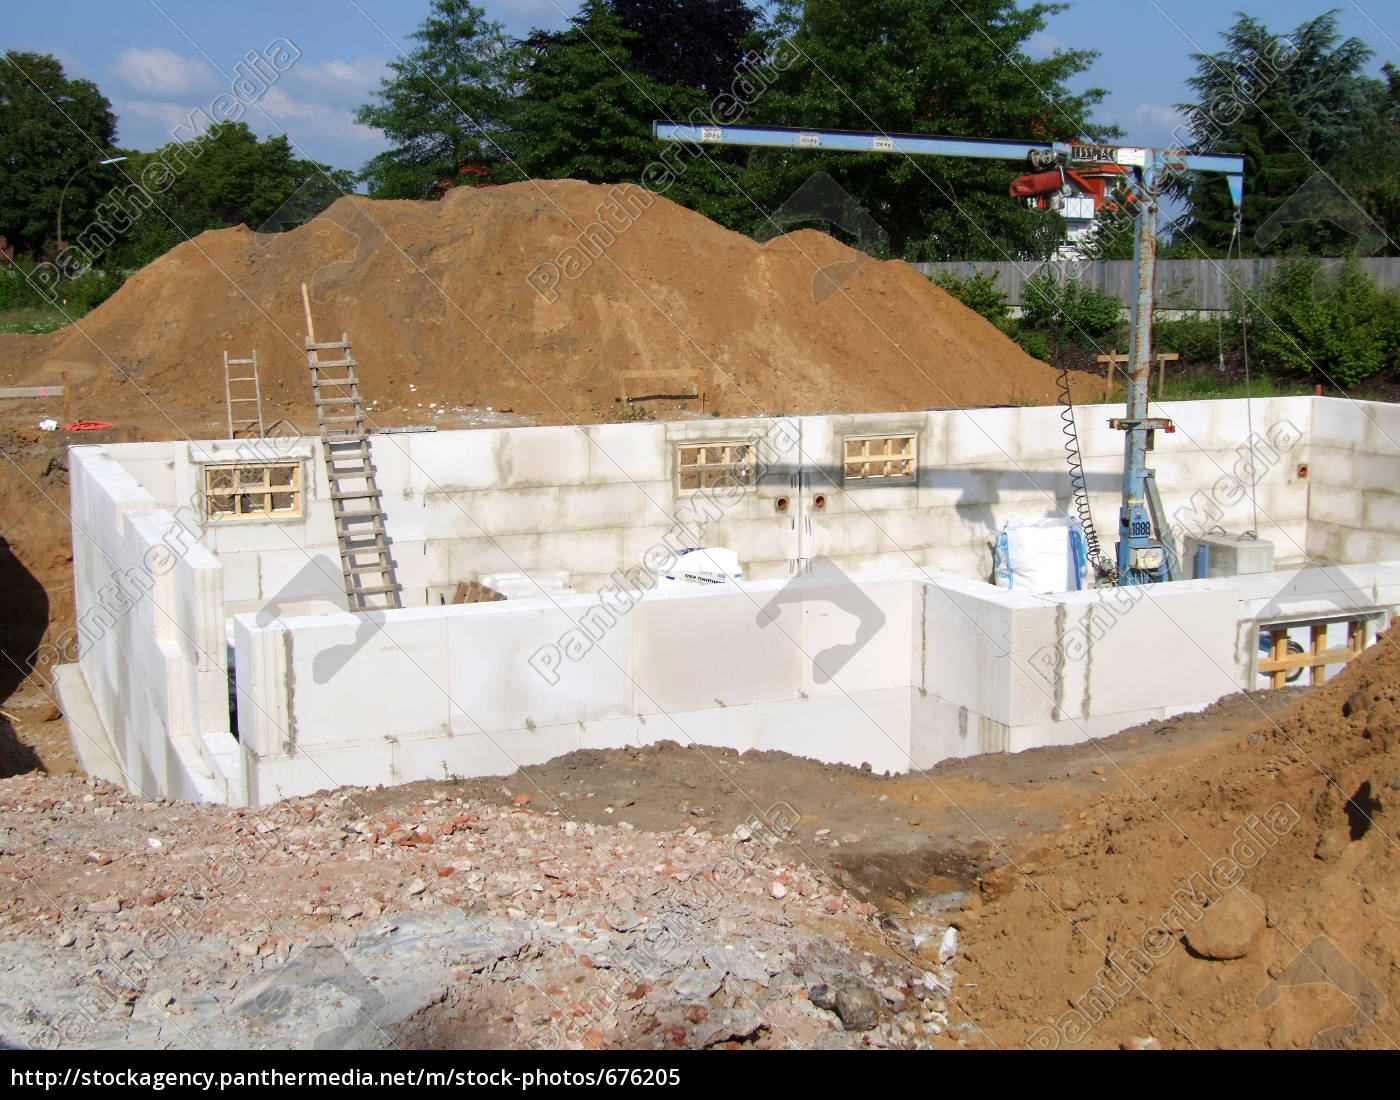 townhouses - 676205